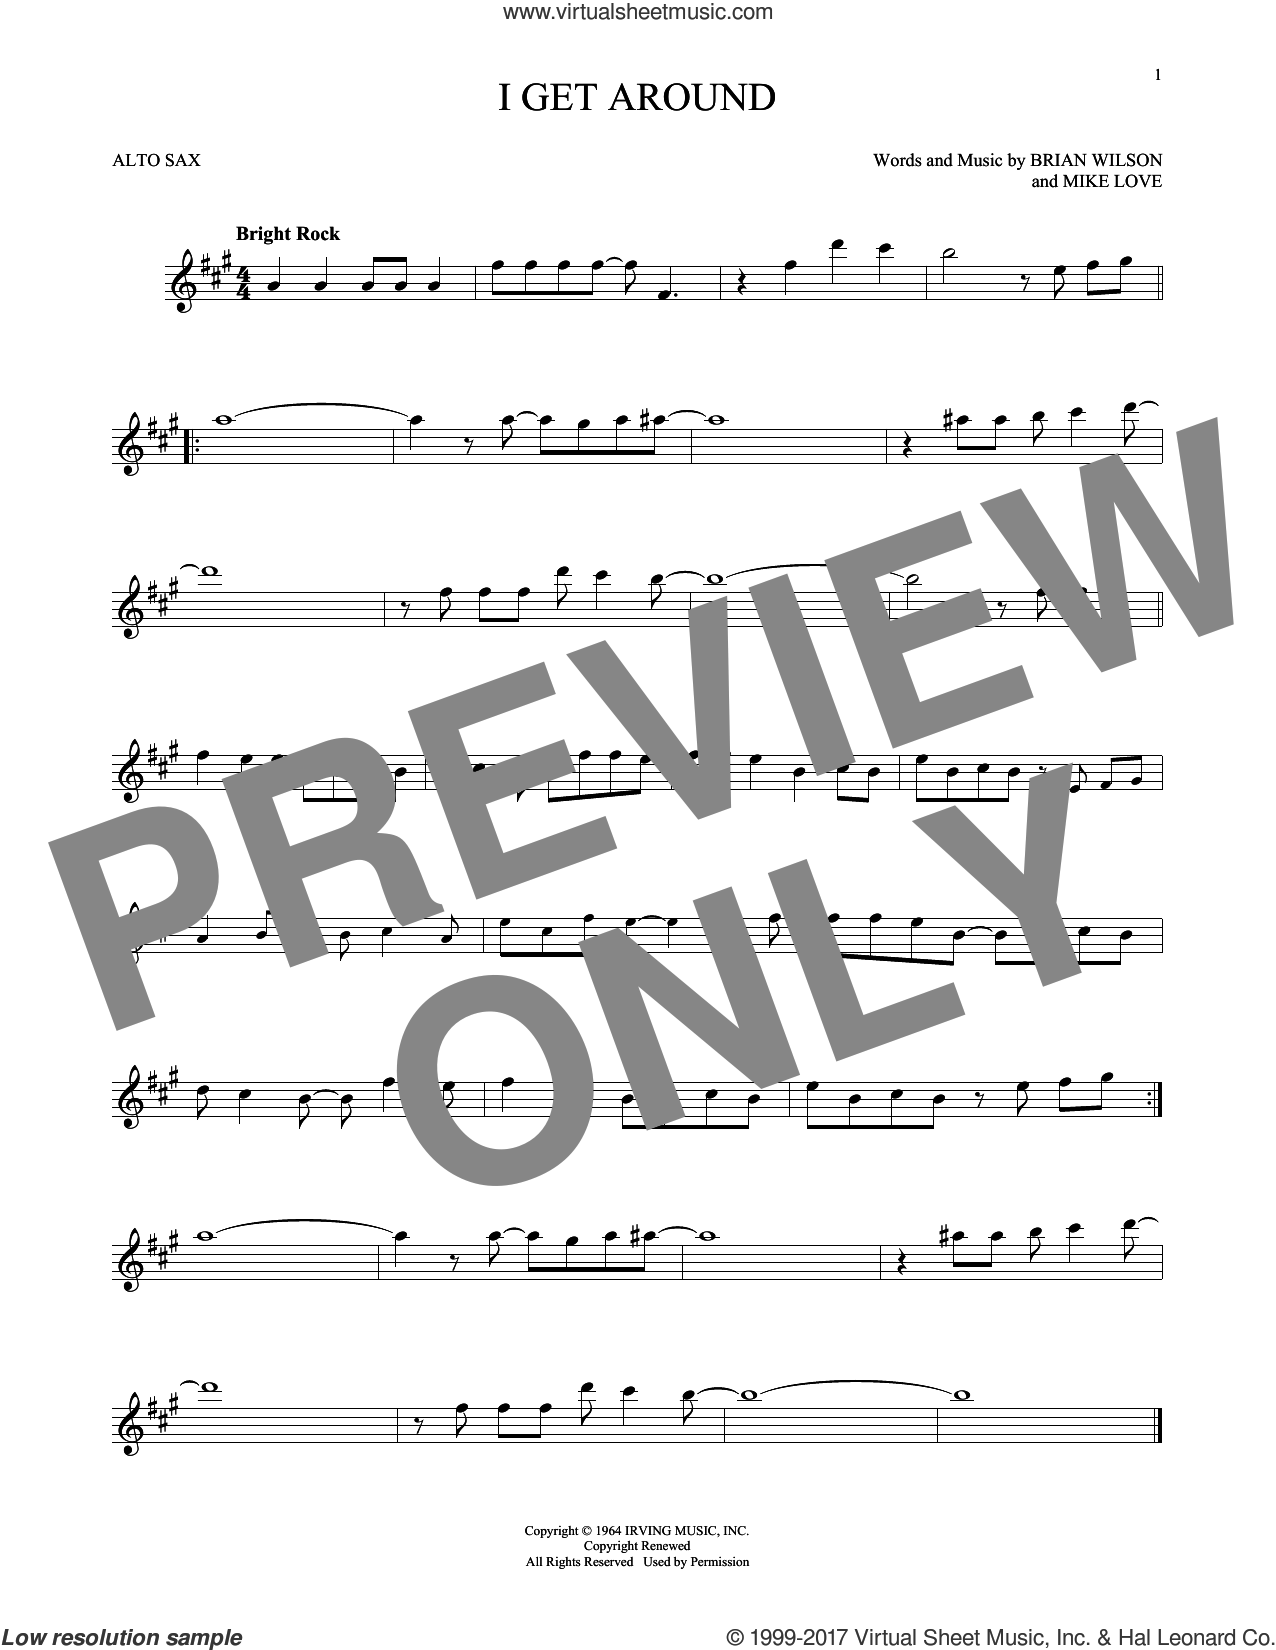 I Get Around sheet music for alto saxophone solo ( Sax) by The Beach Boys, Brian Wilson and Mike Love, intermediate alto saxophone ( Sax)